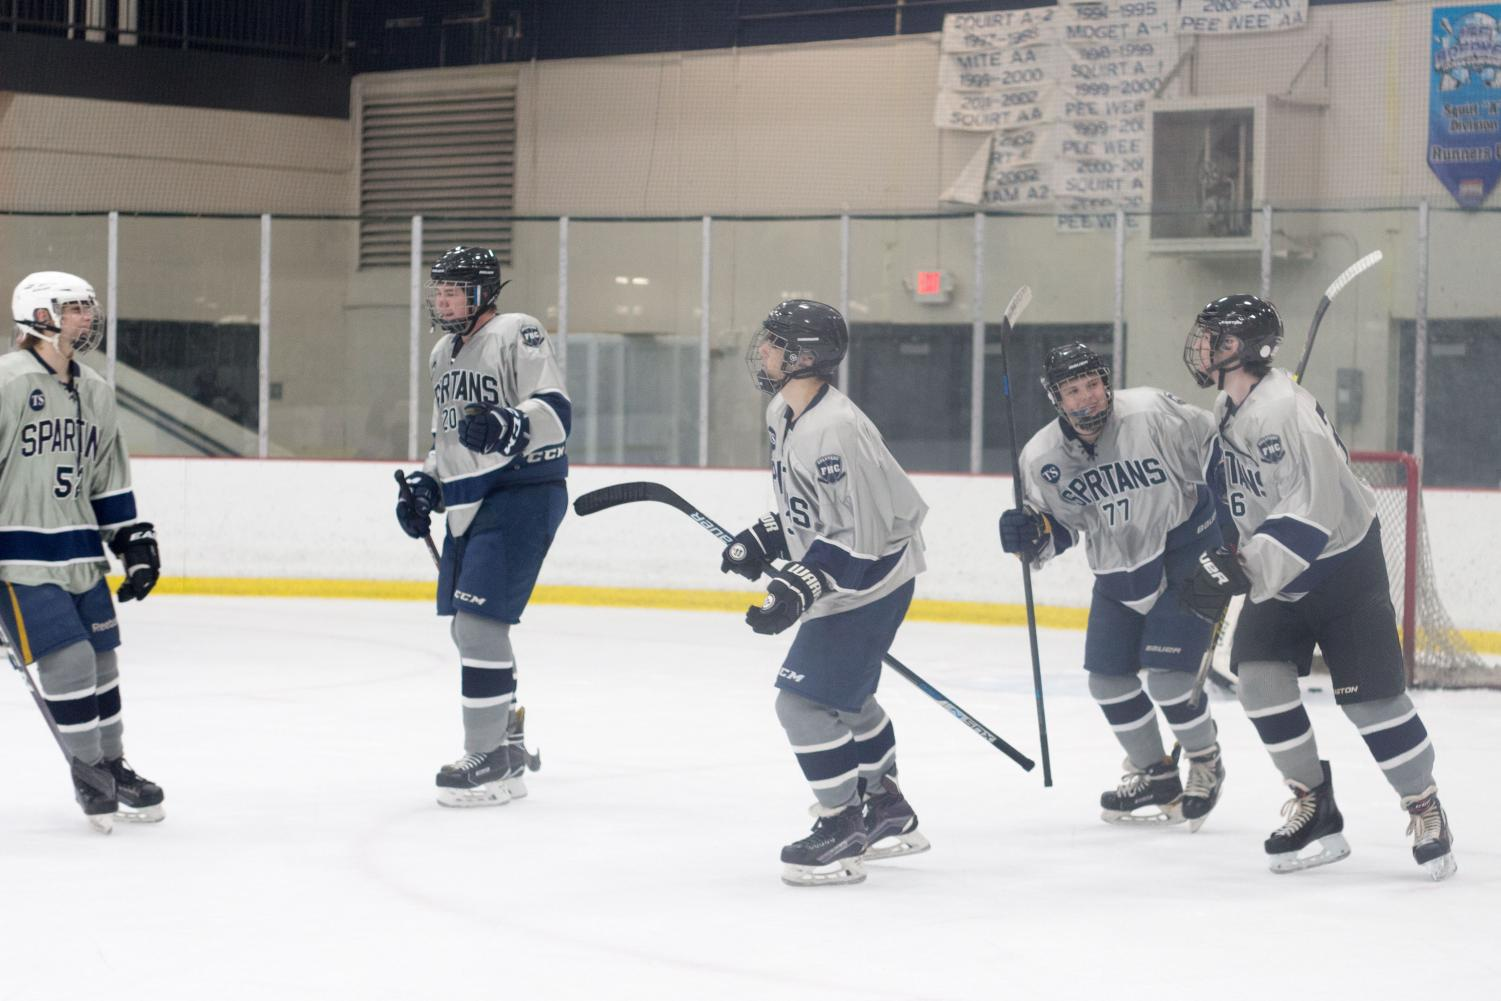 The hockey team has accumulated an 8-4-0 record, and is expected to only improve from there. Here the team can be seen building camaraderie.